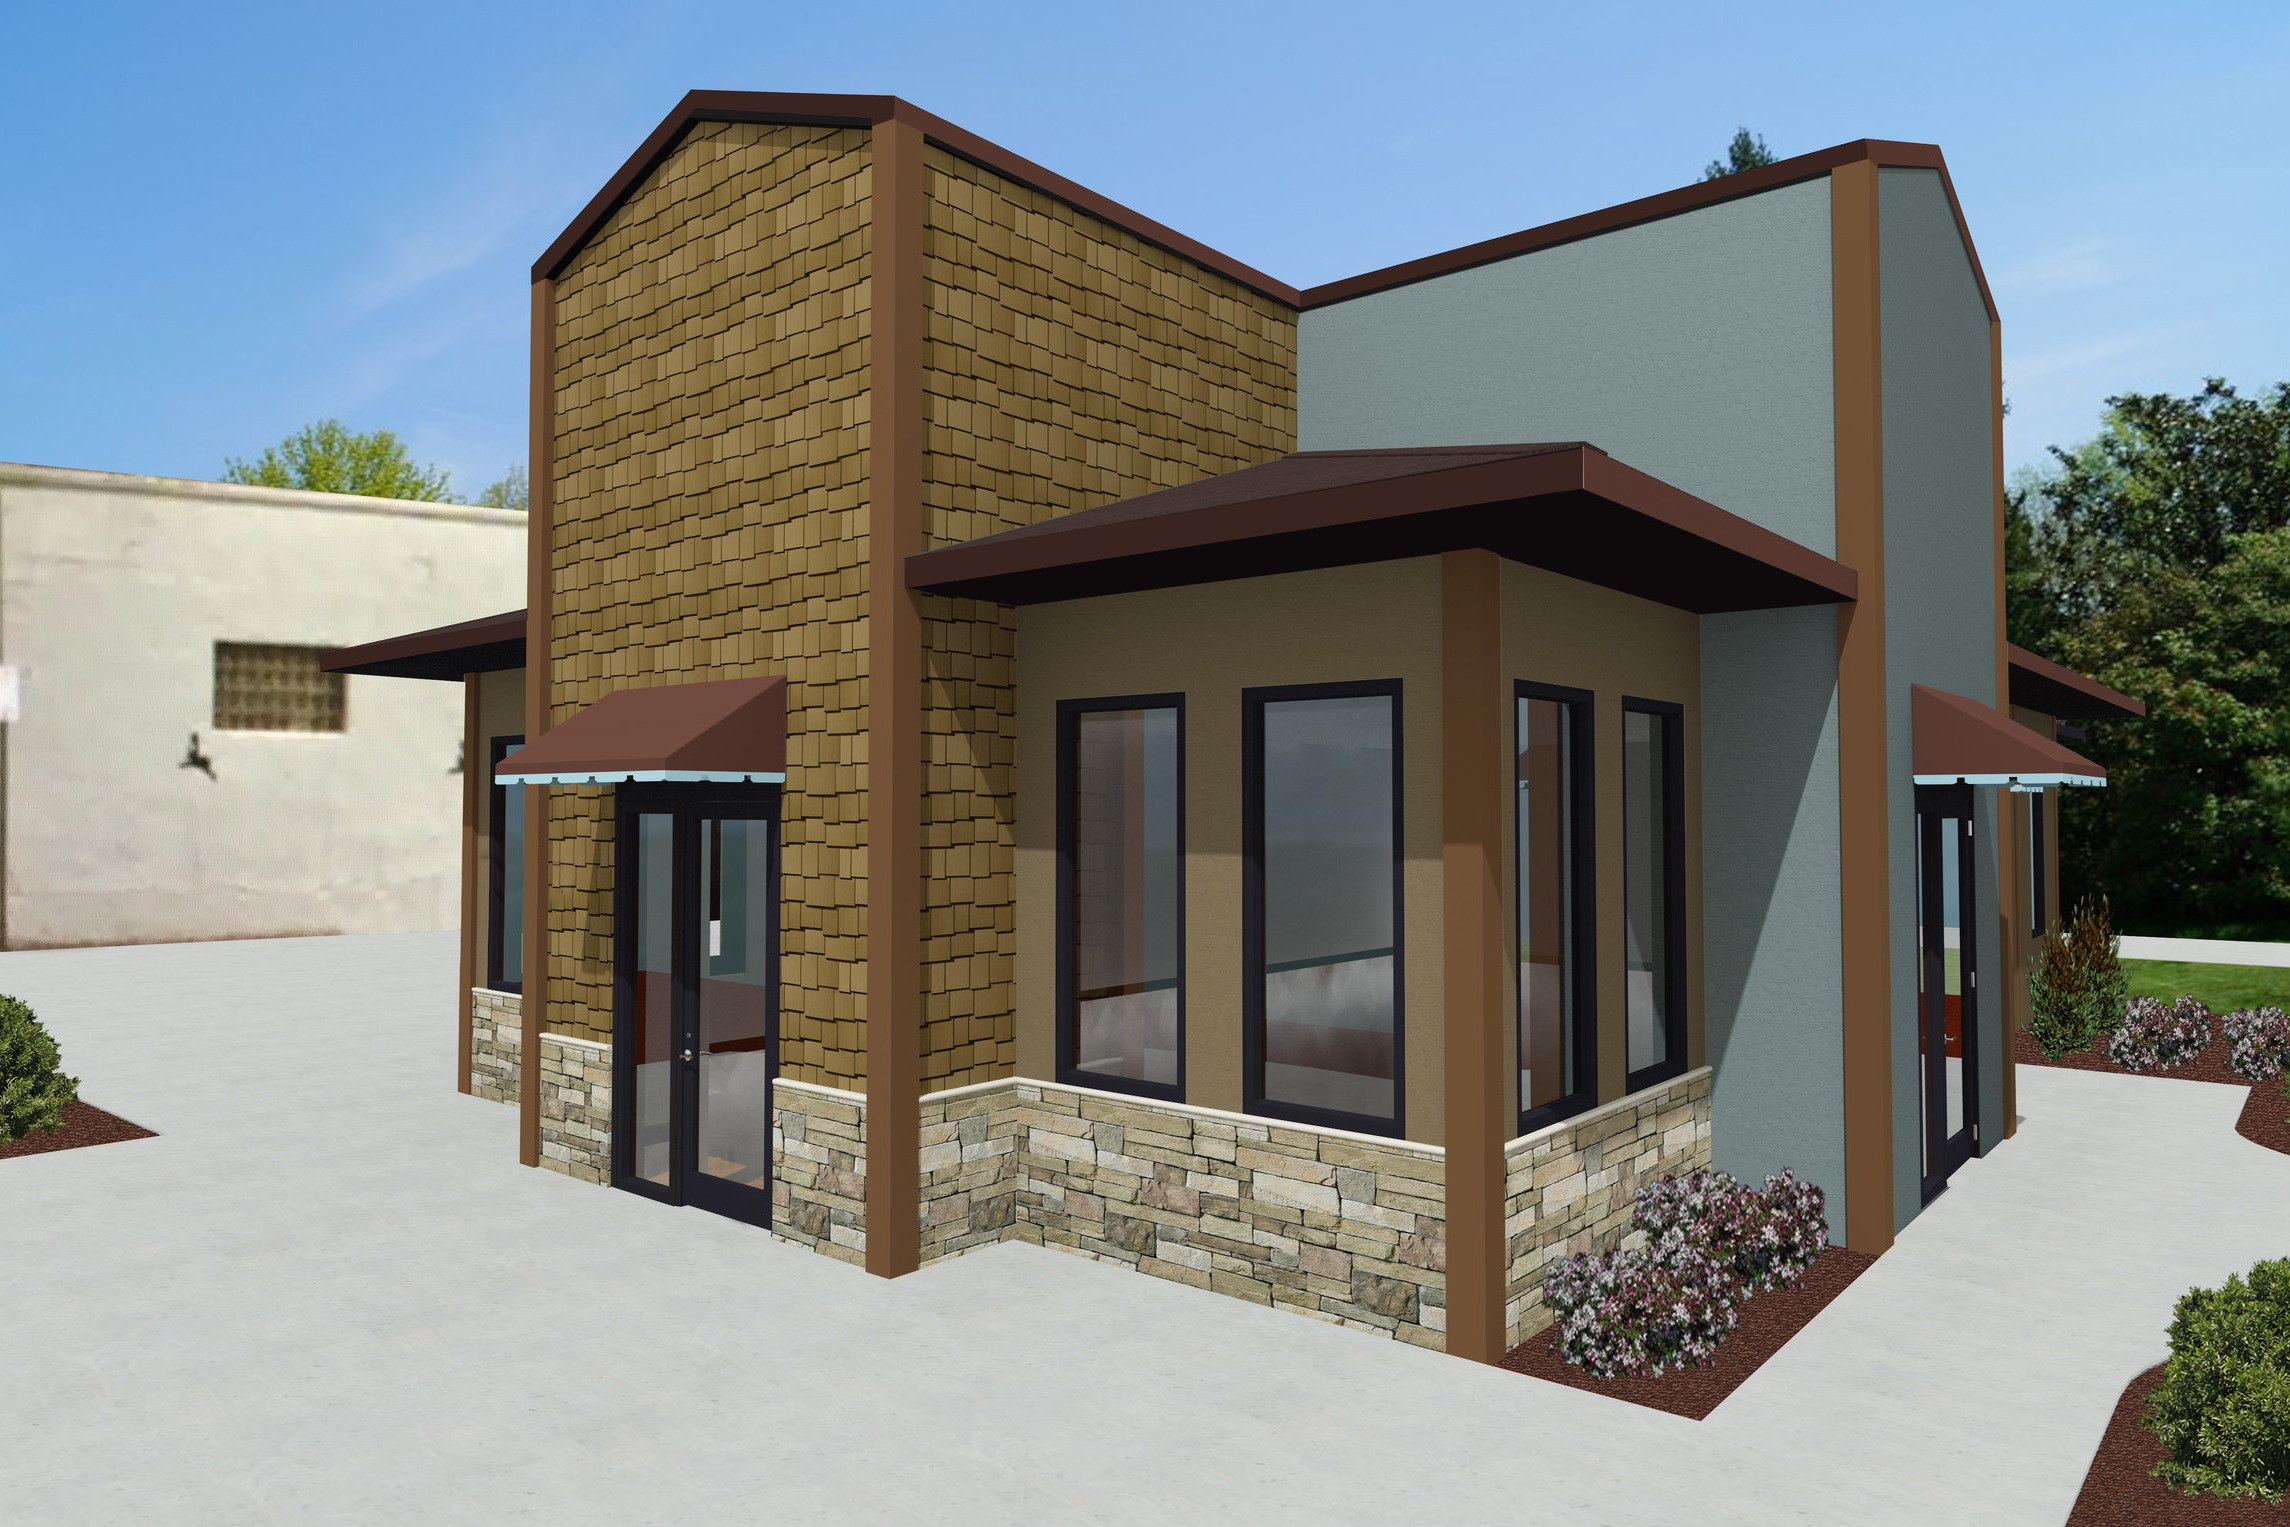 South Minnesota Ave Exterior Renovation - Sioux Falls, SD